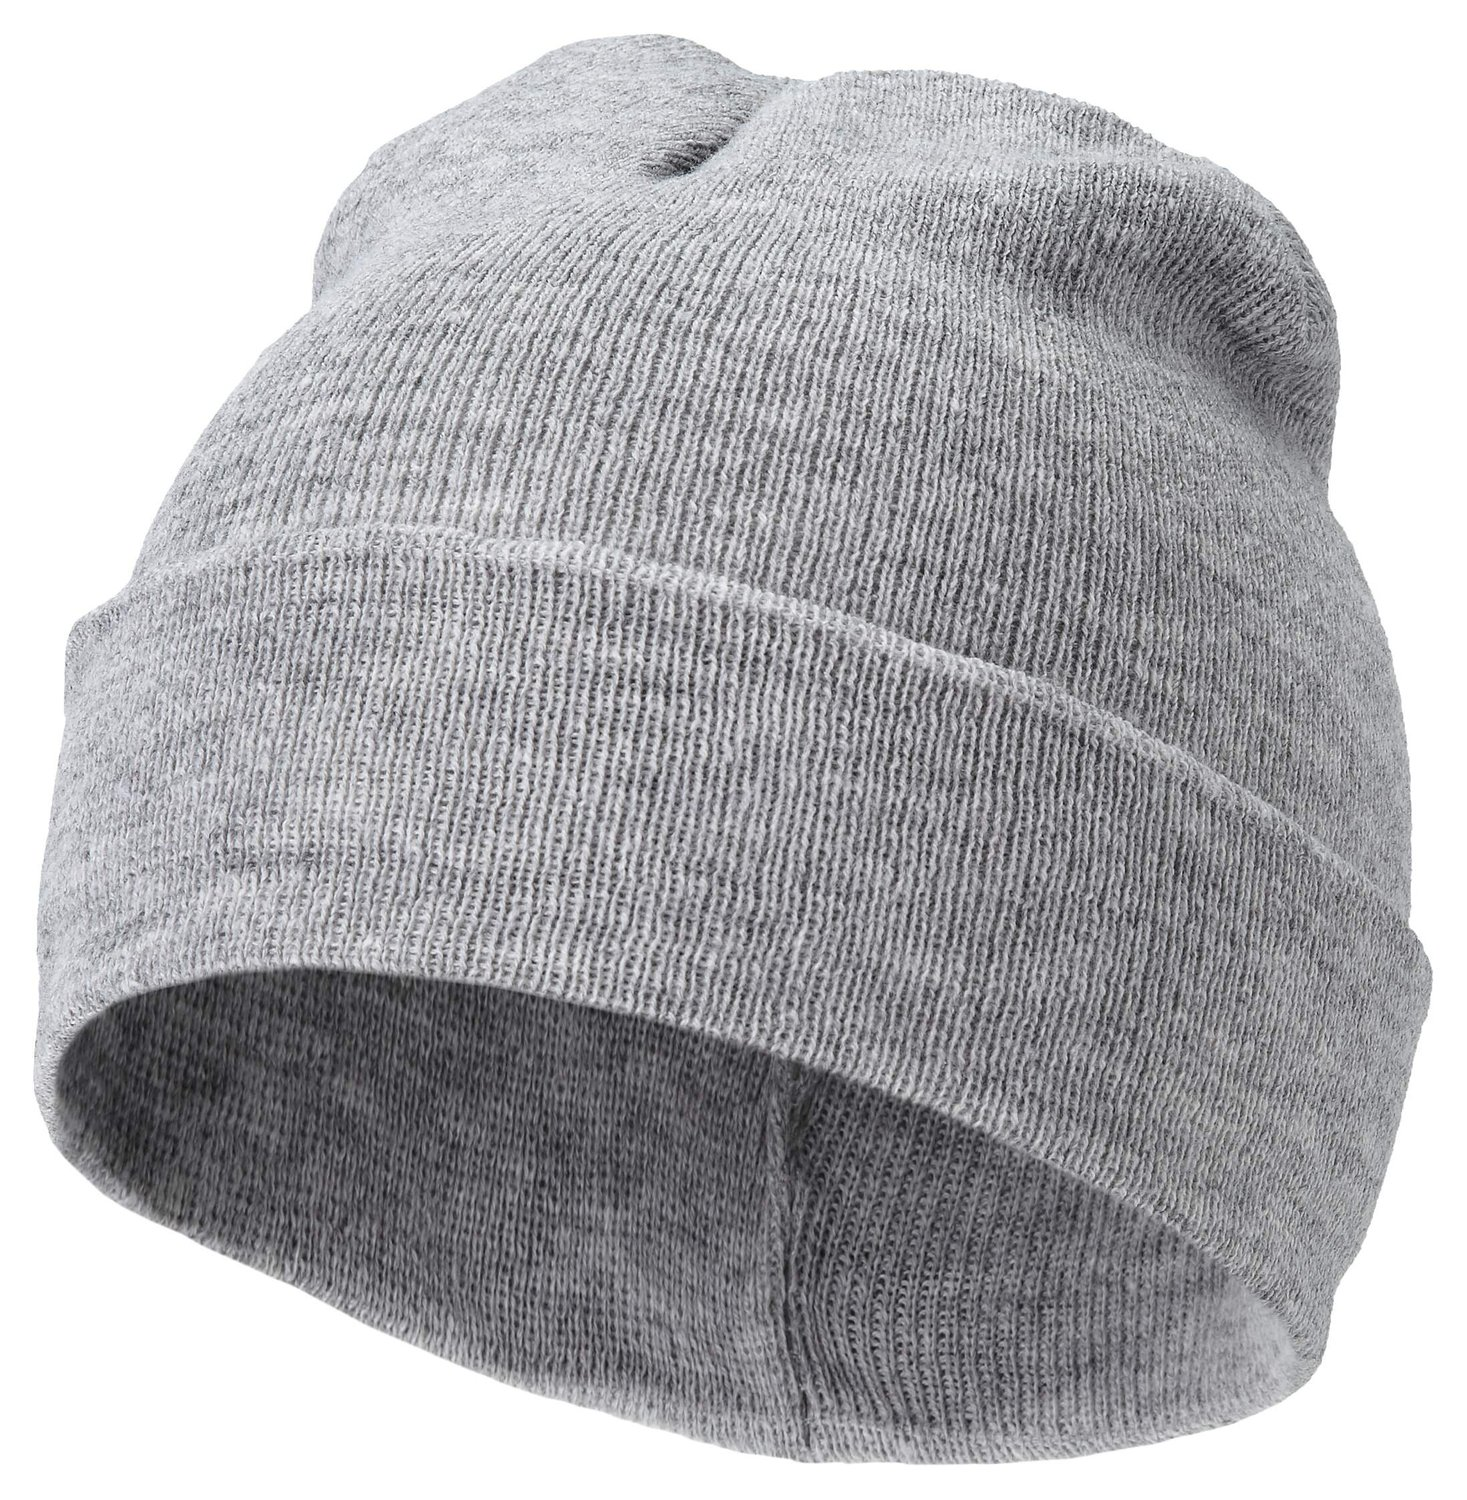 U.S. Knitted Beanie Beany Cap Hat - 4 Colours Black Red Navy Grey (ASH GREY): Amazon.co.uk: Clothing